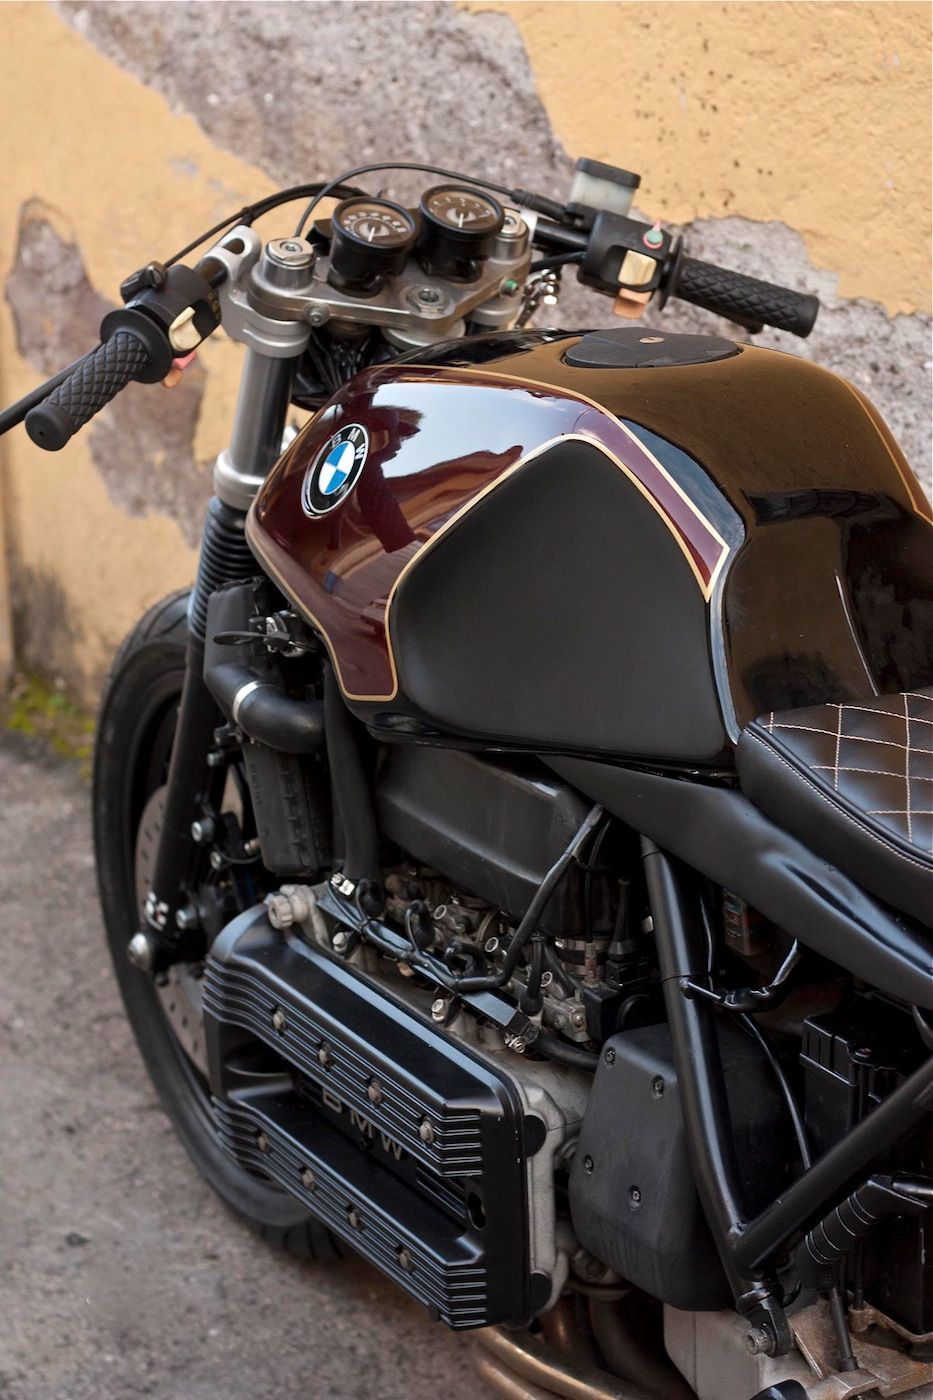 K100 By Cafe Twin Inazuma Café Racer Pinned For The Handle Bars And Gauge Mounting Bracket